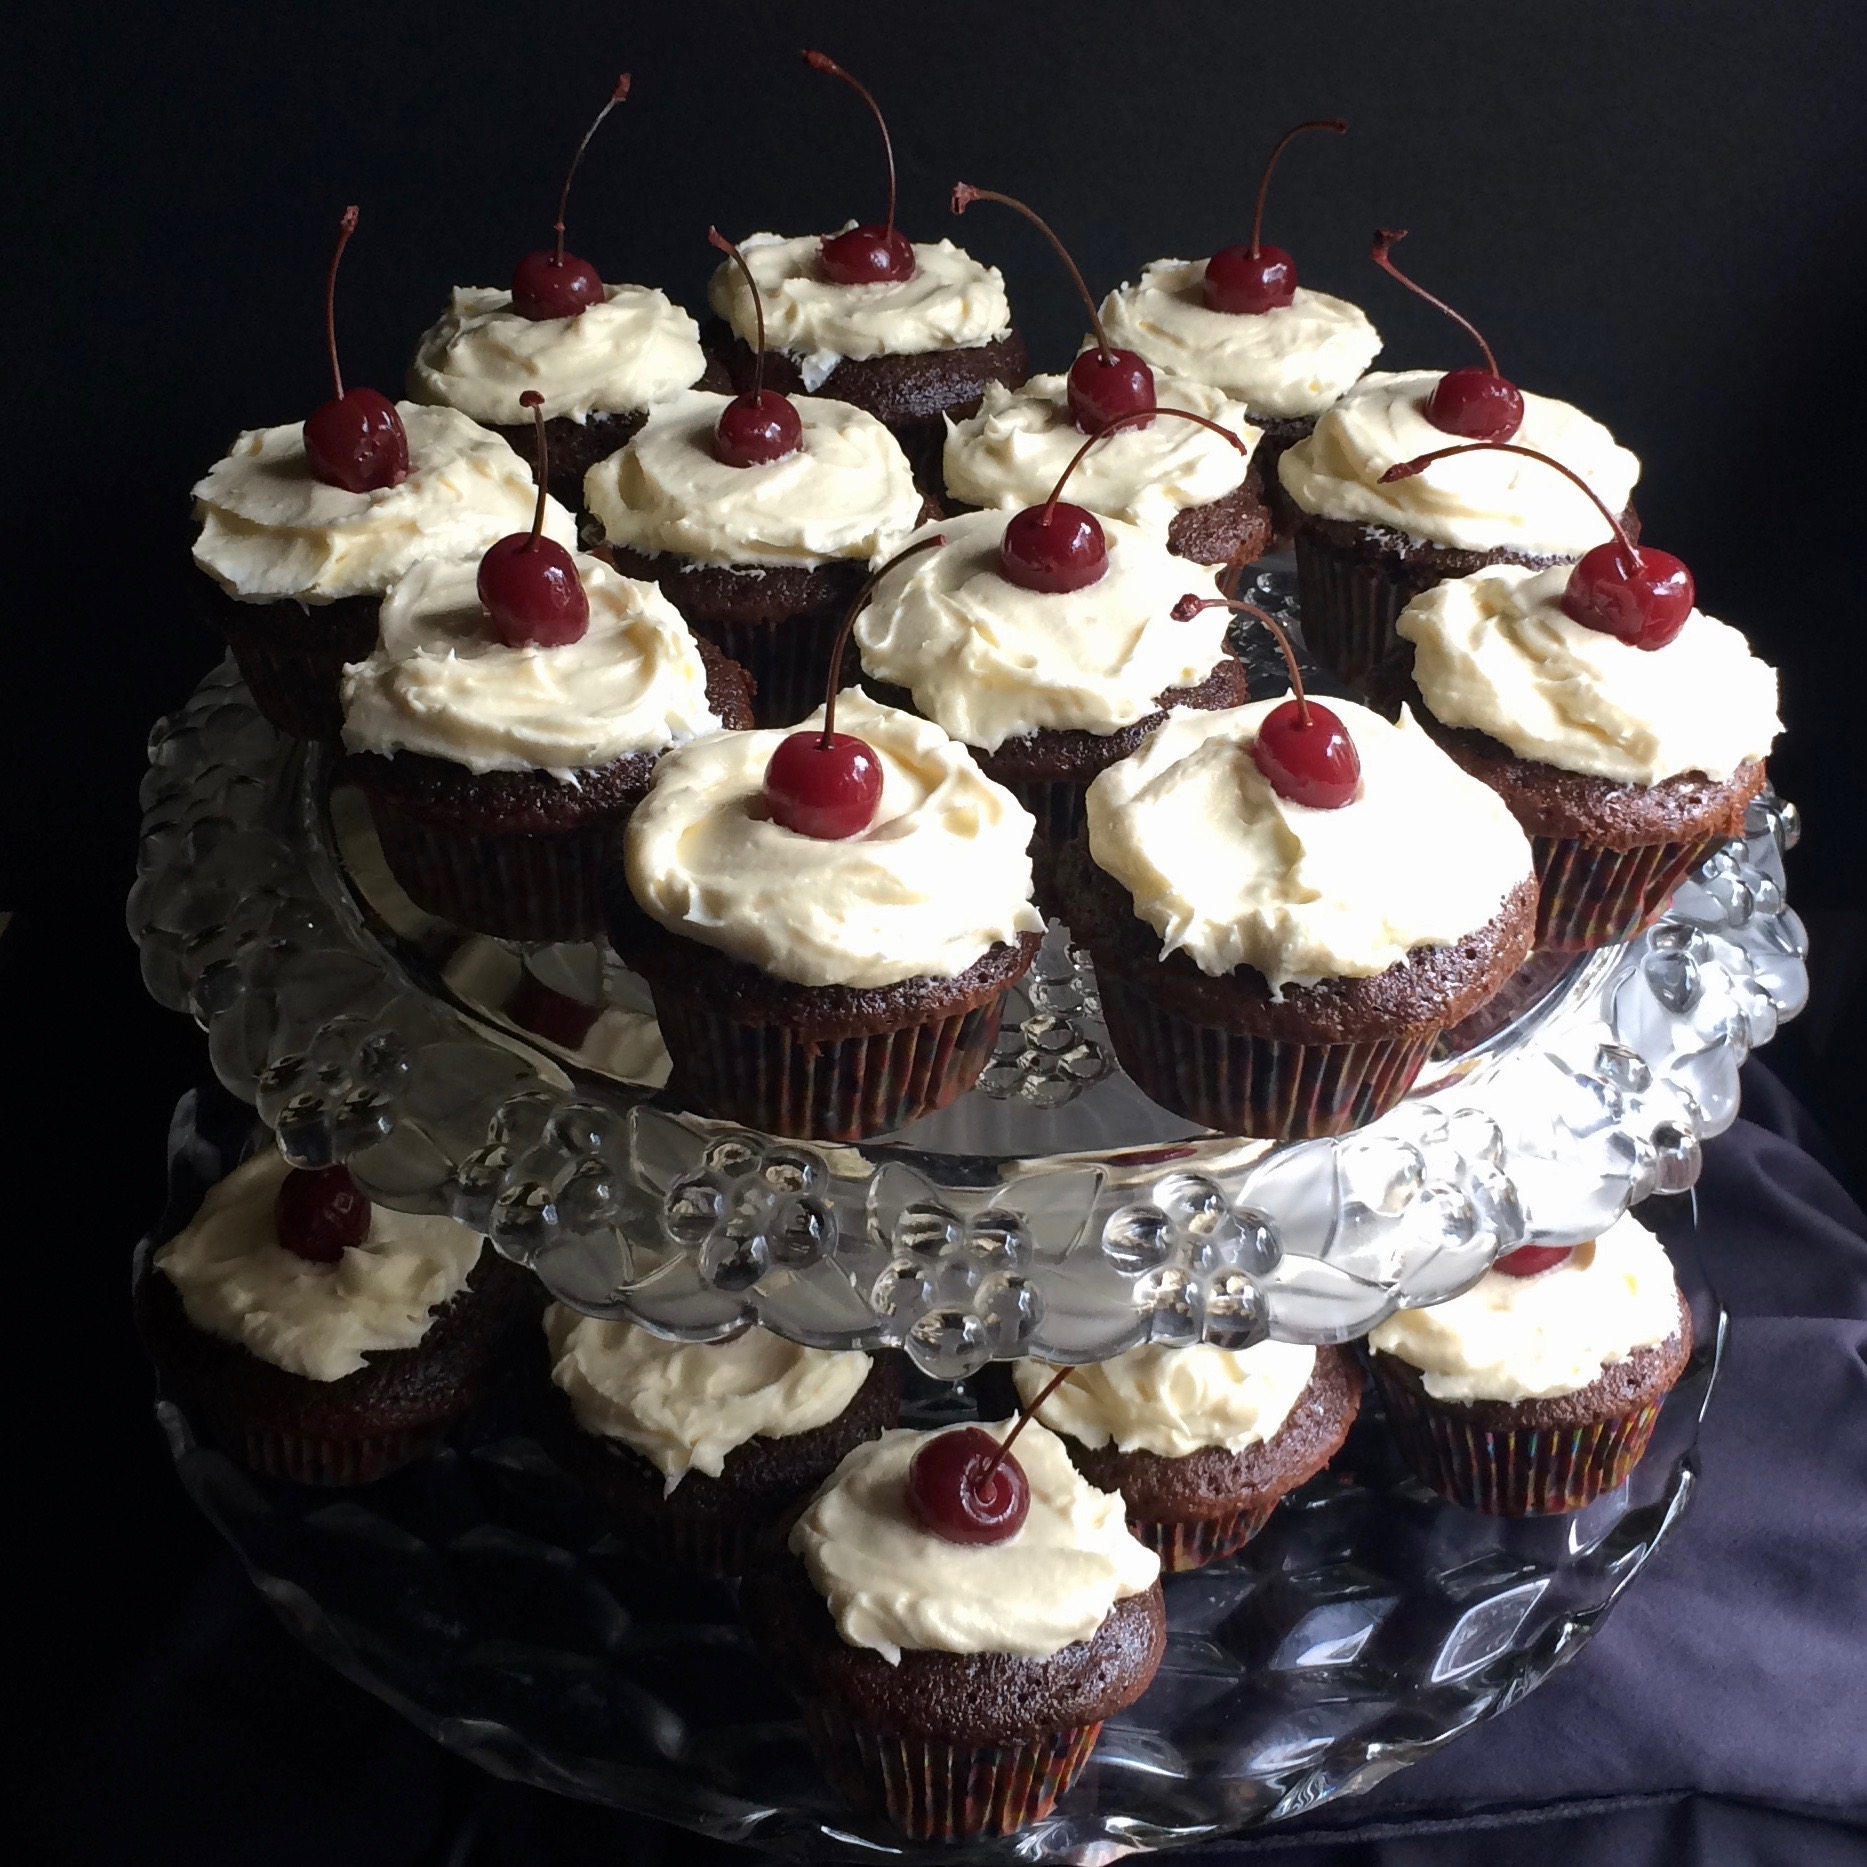 Chocolate-Cherry Cupcakes with Cream Cheese Buttercream Frosting